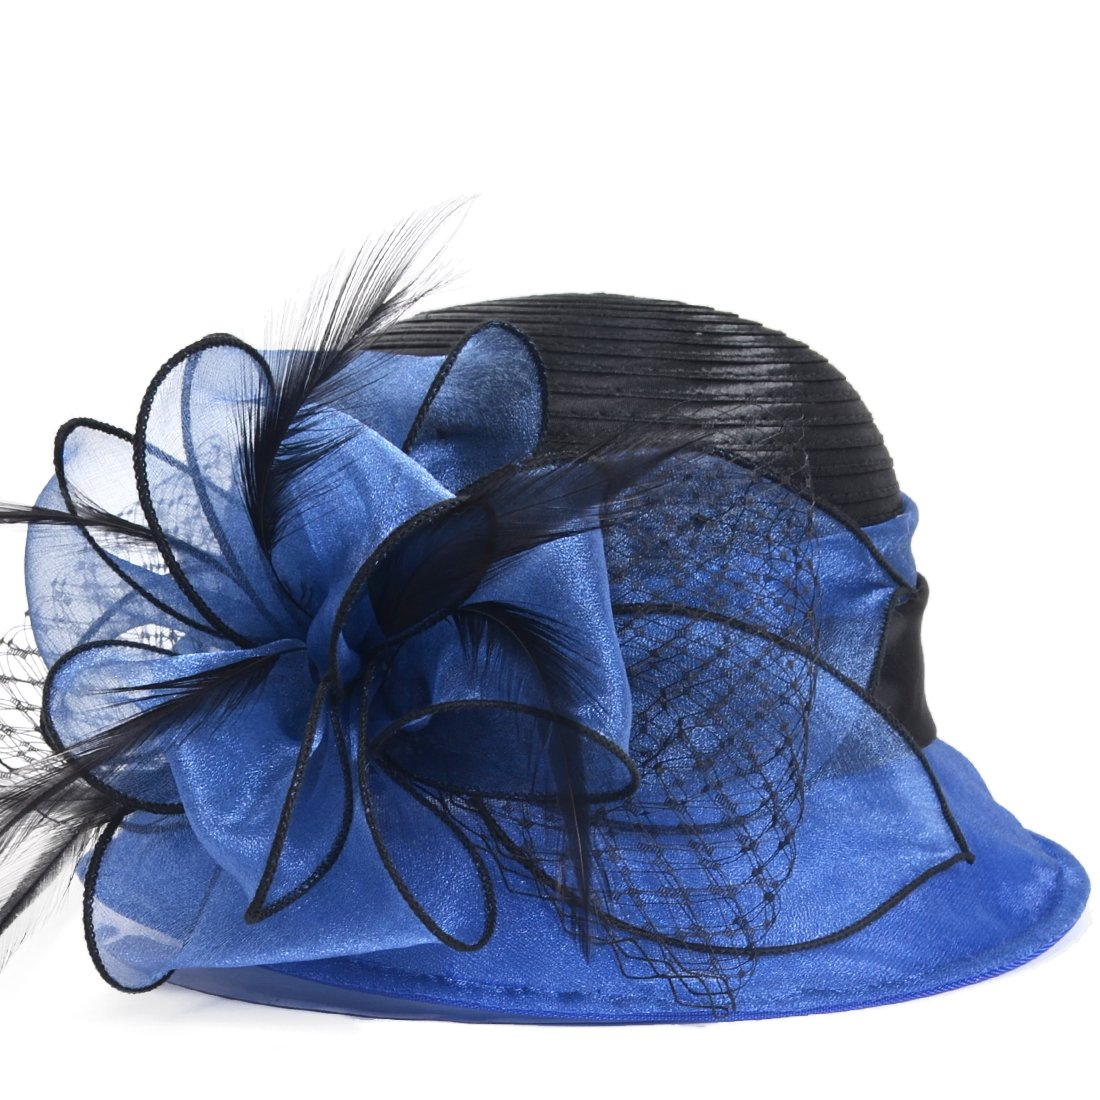 Cloche Oaks Church Dress Bowler Derby Wedding Hat Party S015 (Satin-Blue)